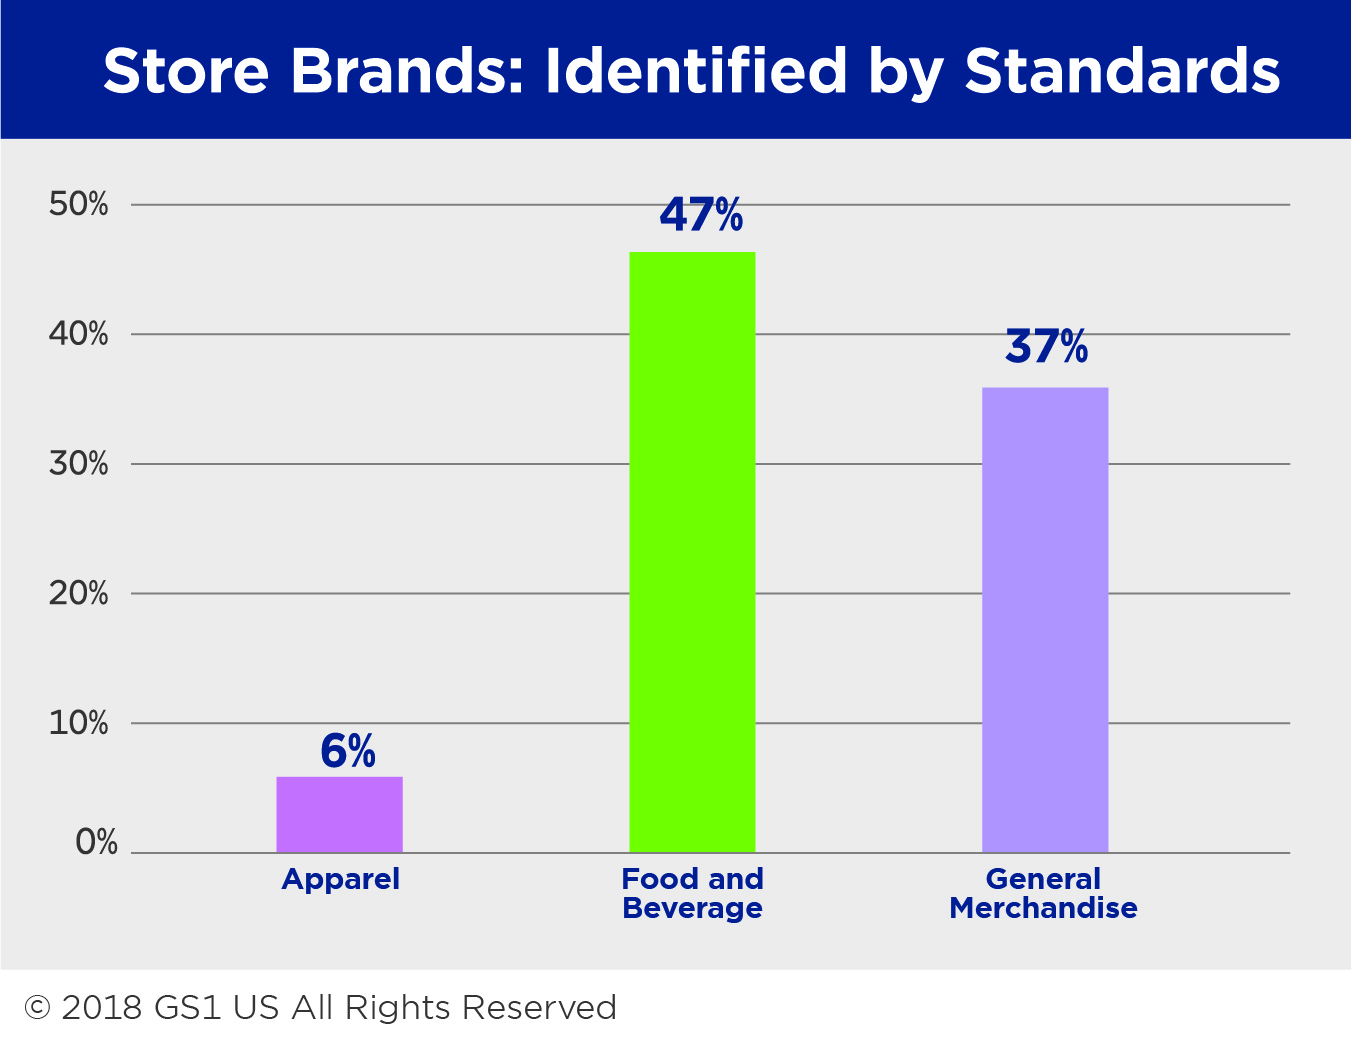 Store Brands: Identified By Standards